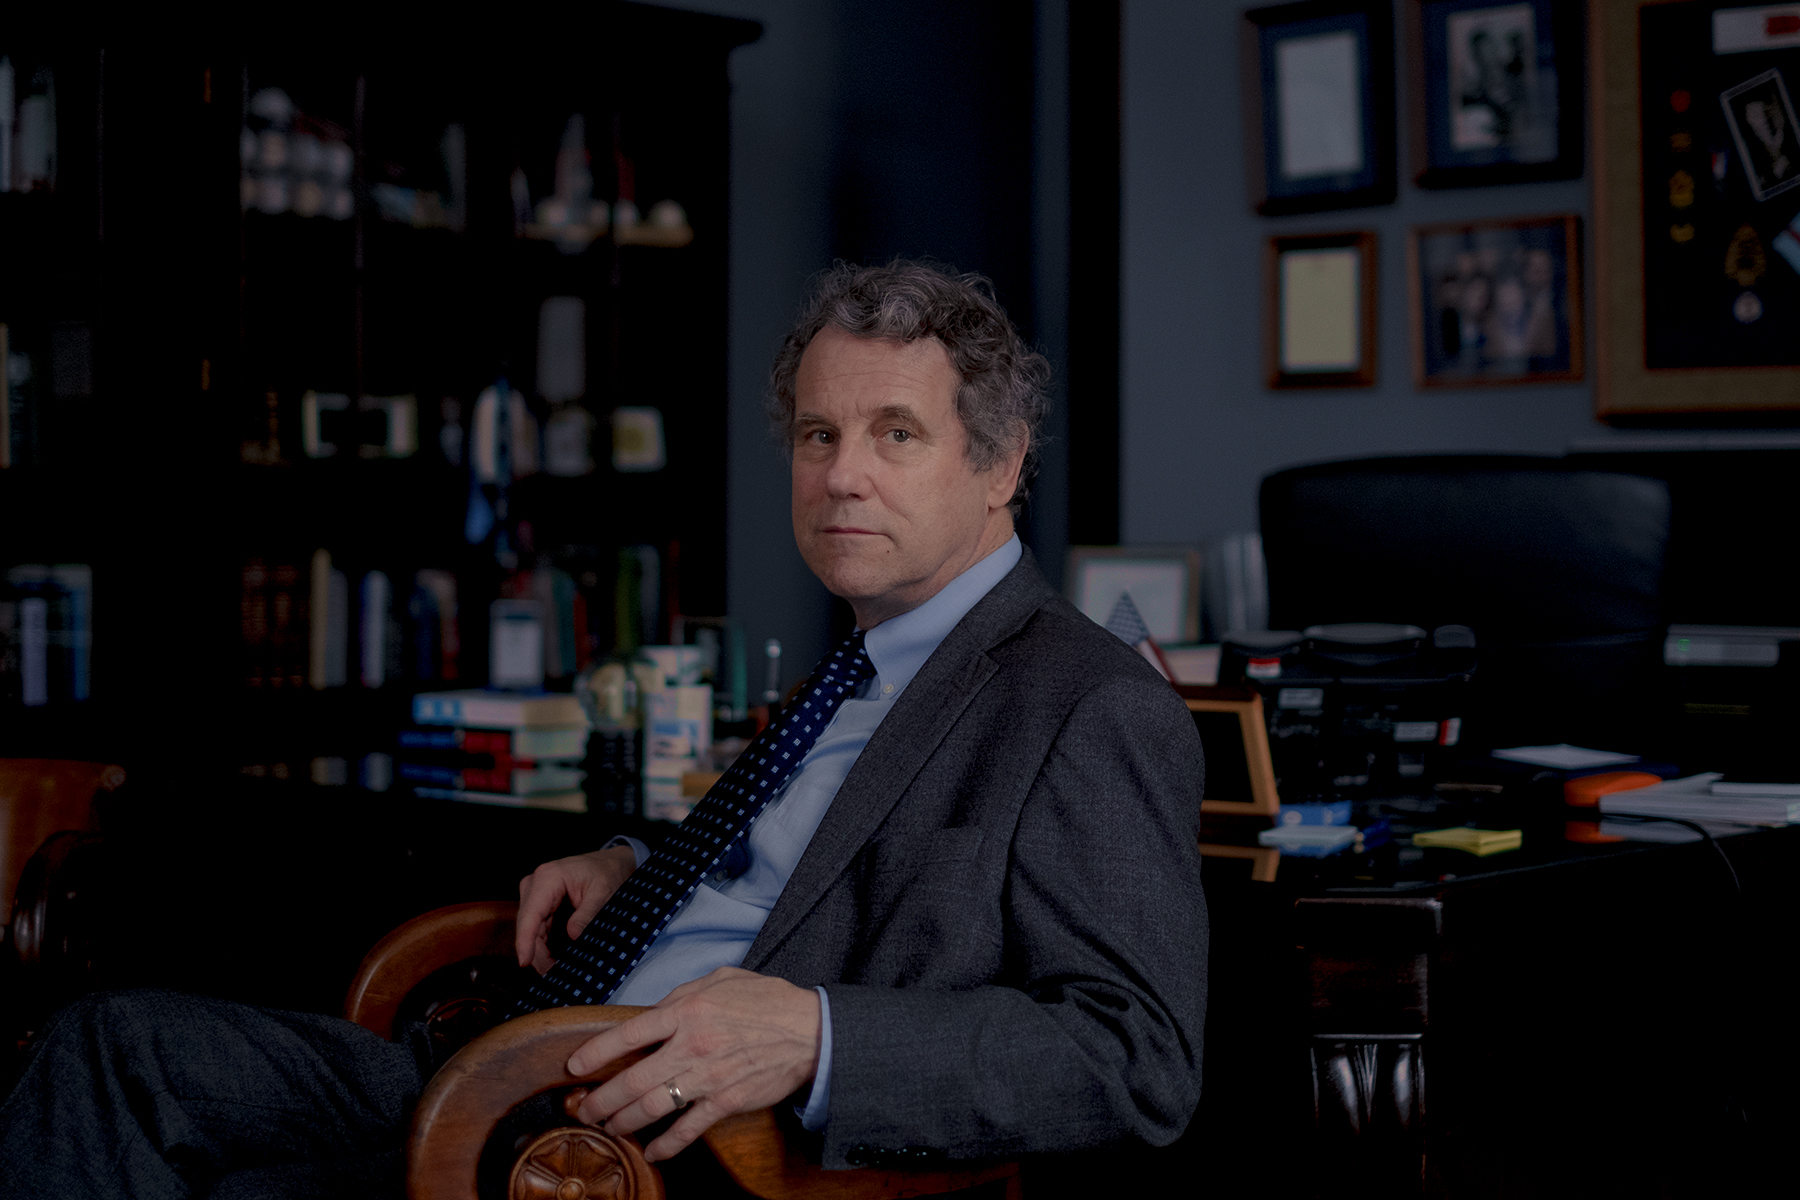 3/12/20, Capitol Hill, Washington, D.C. Sen. Sherrod Brown (D-Ohio) in his office at the Senate Hart Office building on Capitol Hill in Washington, D.C. on March 12, 2020. Gabriella Demczuk / Rolling Stone Magazine